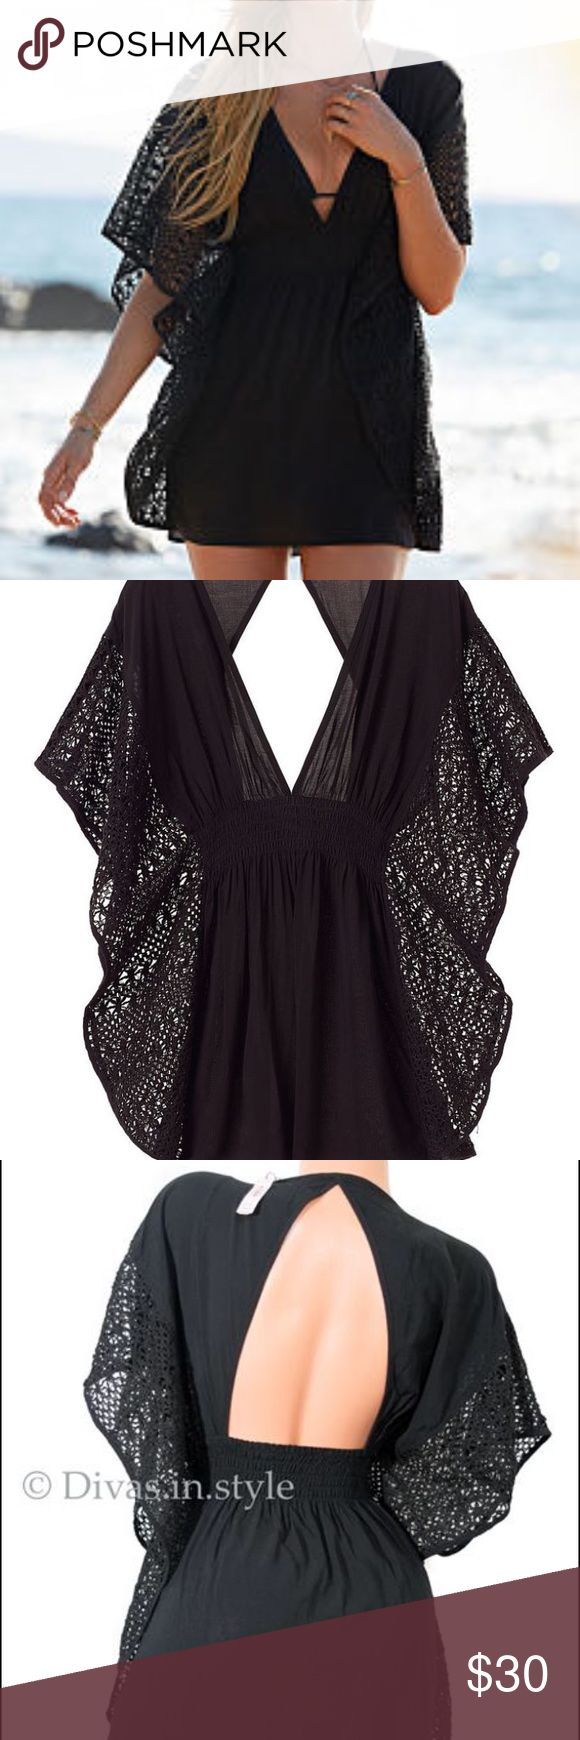 Victoria secret plunge caftan crochet swim cover Medium, worn once no flaws! Victoria's Secret Swim Coverups